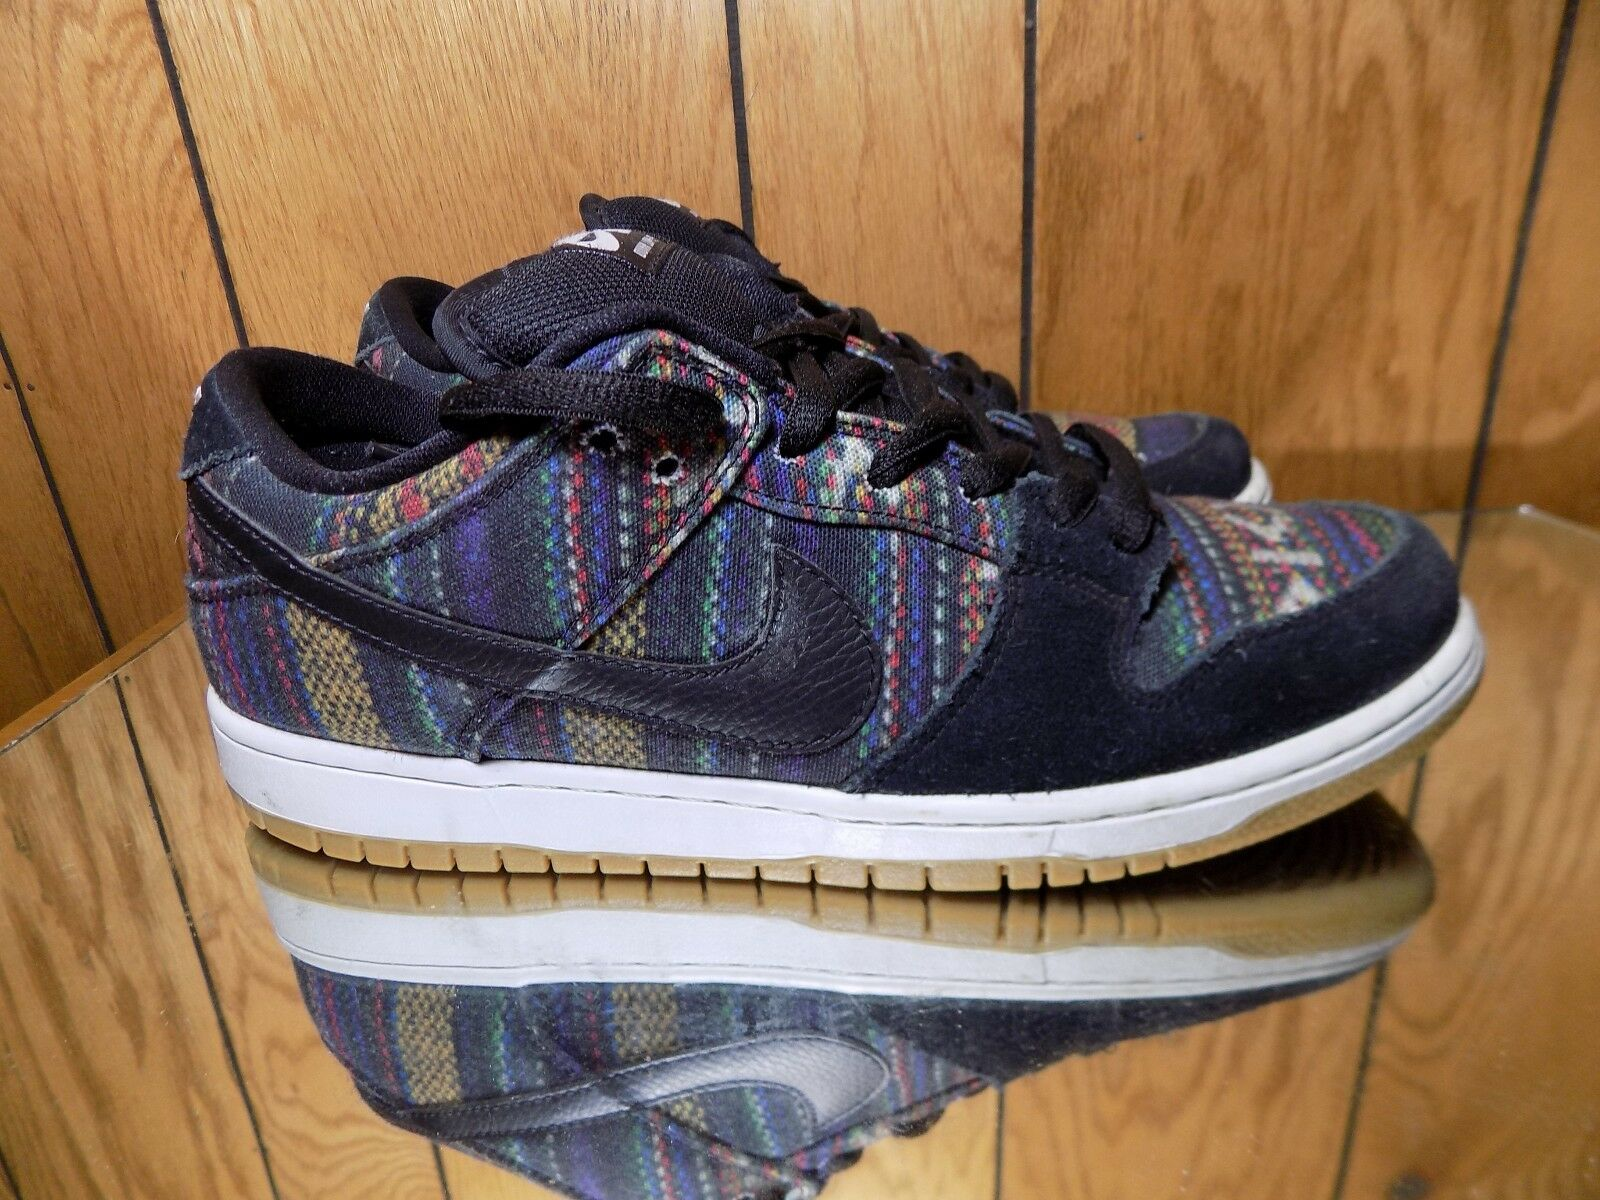 2014 Nike Hackey Sack Dunk Low sz 9.5 504750-901